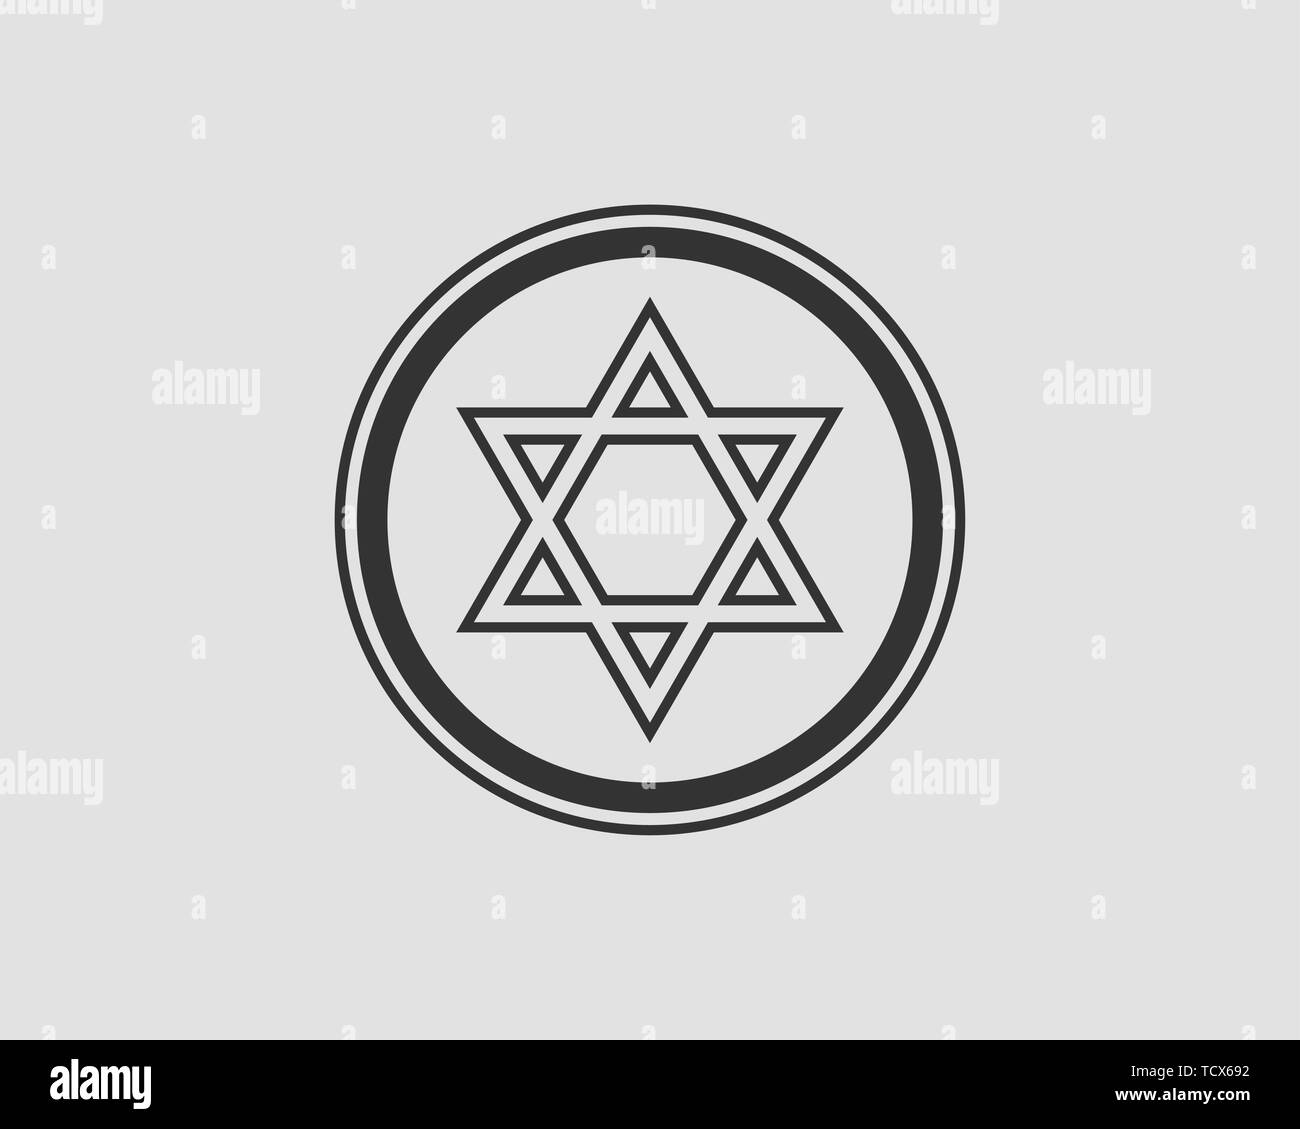 Jewish Star of David icon. Vector six pointed stars symbol. - Stock Image